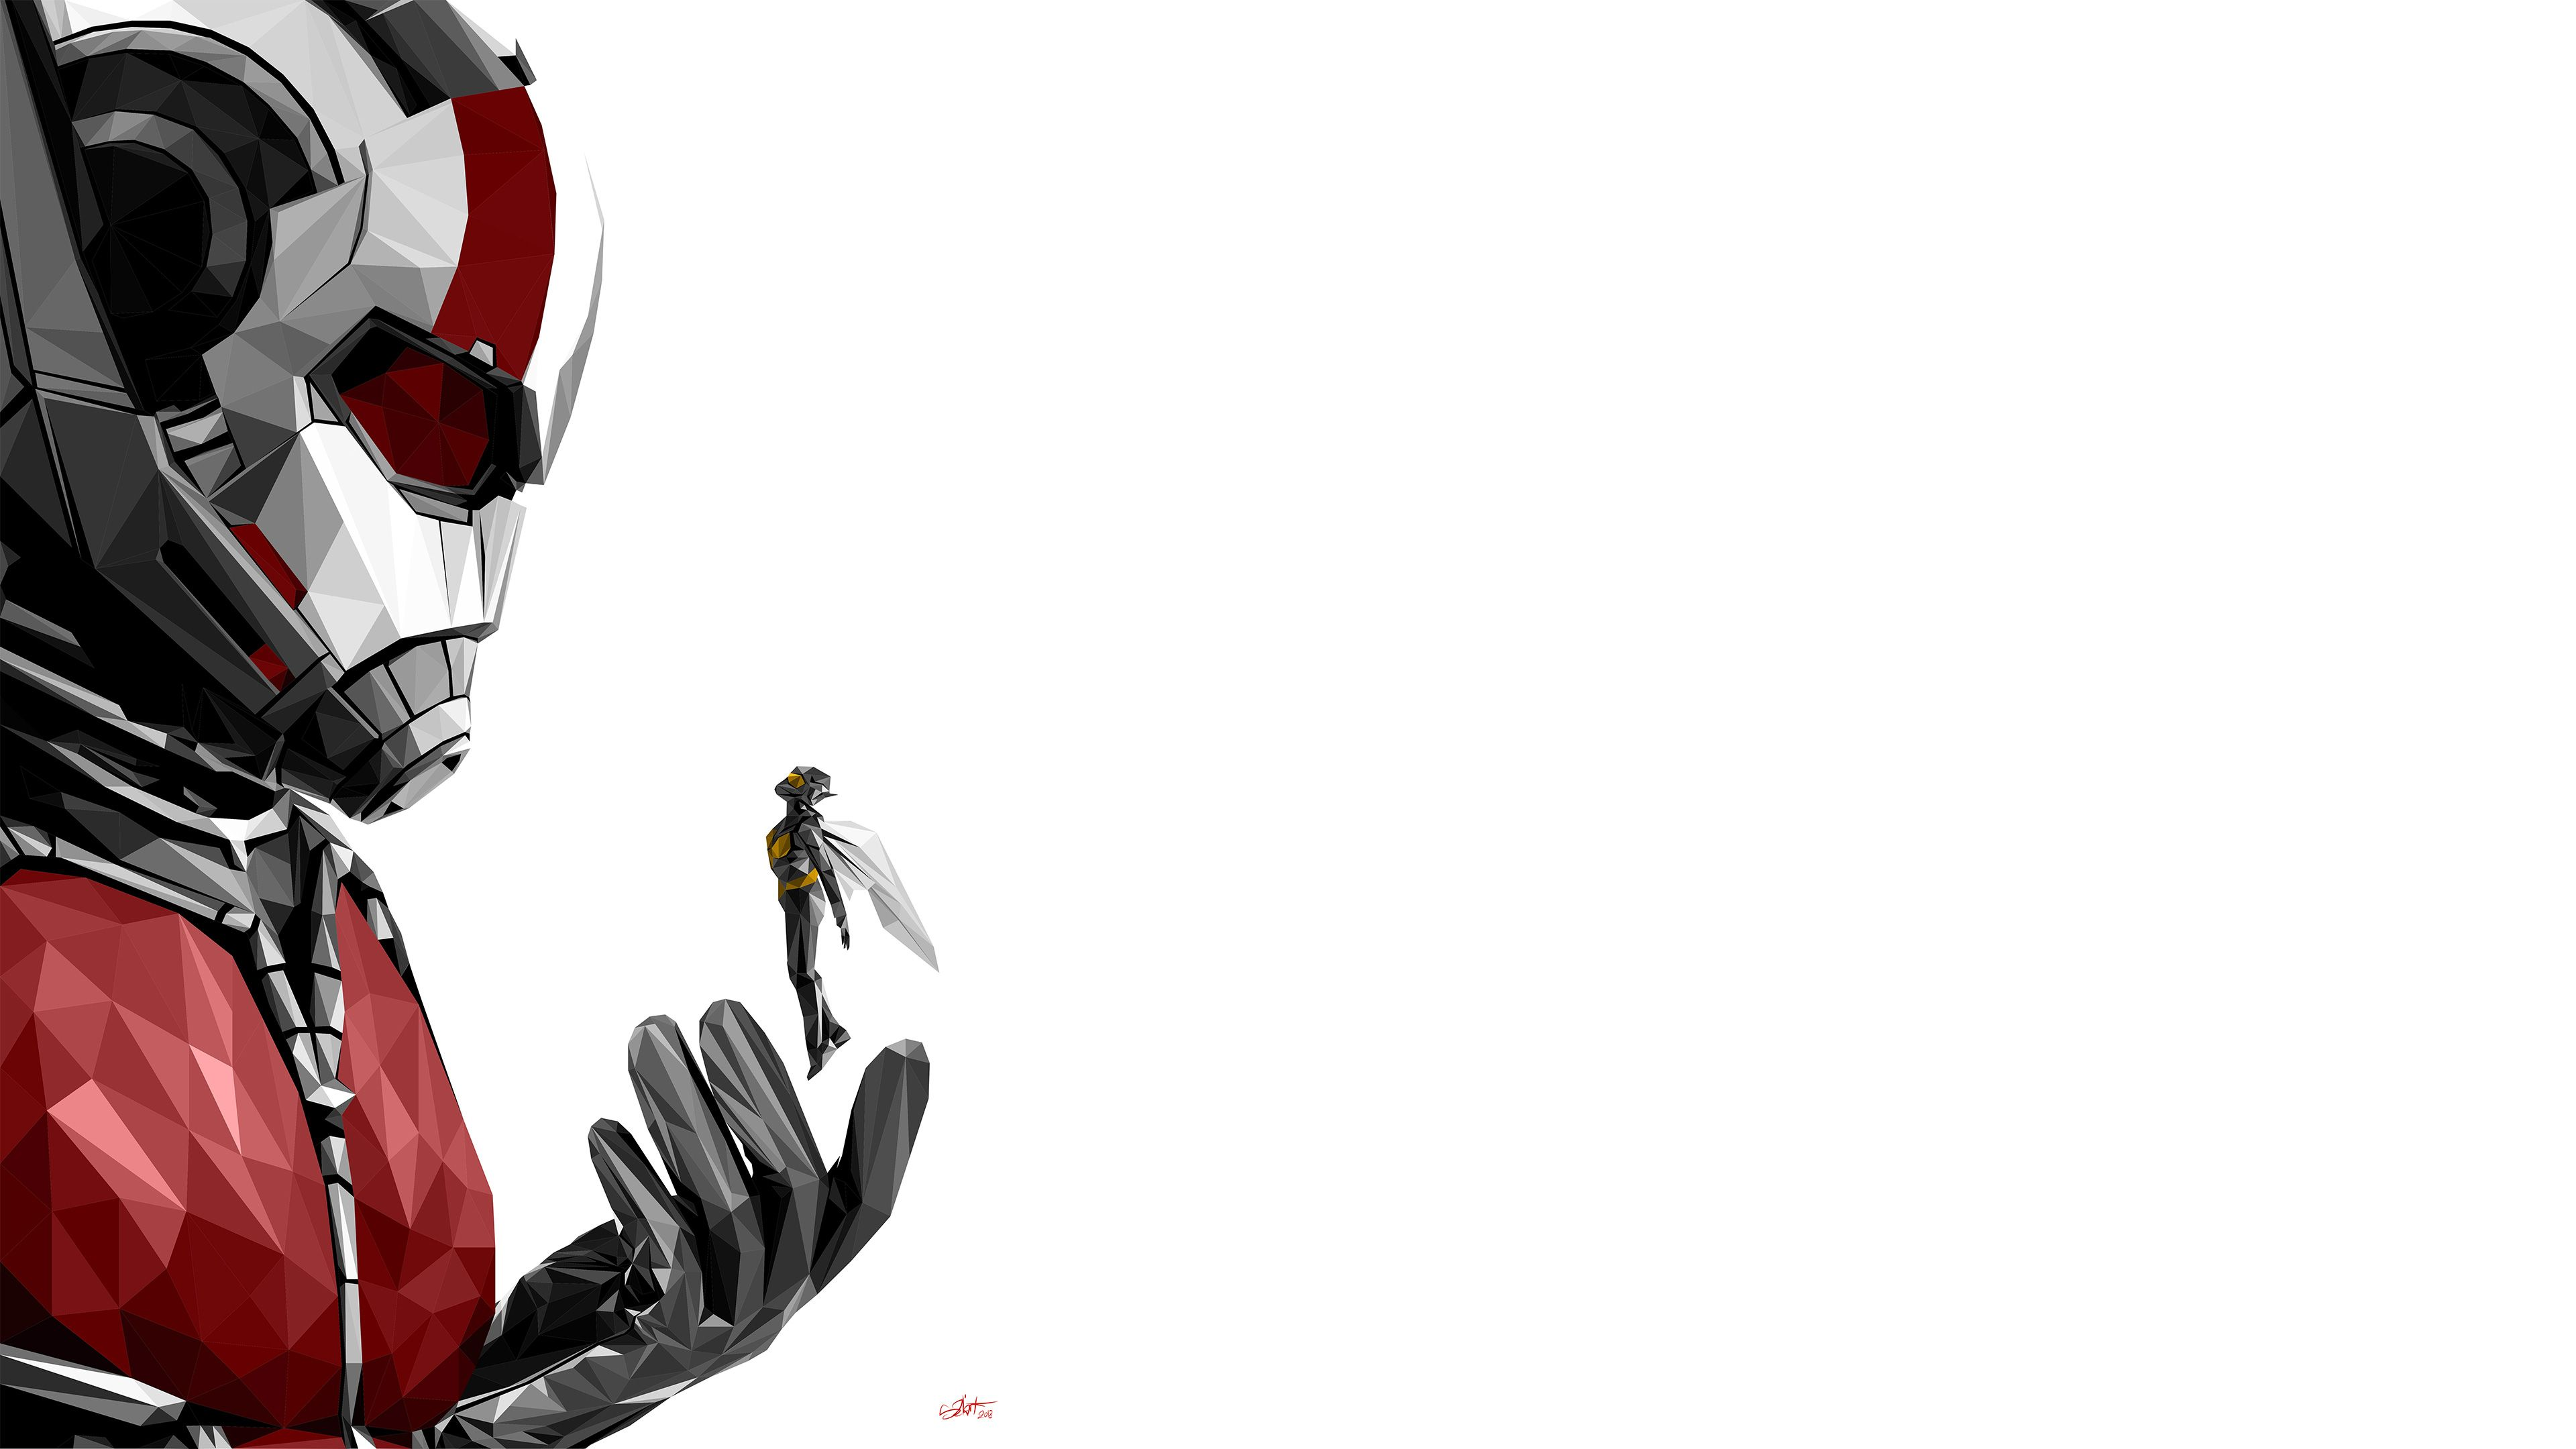 Ant Man And The Wasp Movie 4k Movies Wallpapers Hd Wallpapers Digital Art Wallpapers Behance Wallpapers Artist Wa Movie Wallpapers Wasp Movie Man Wallpaper